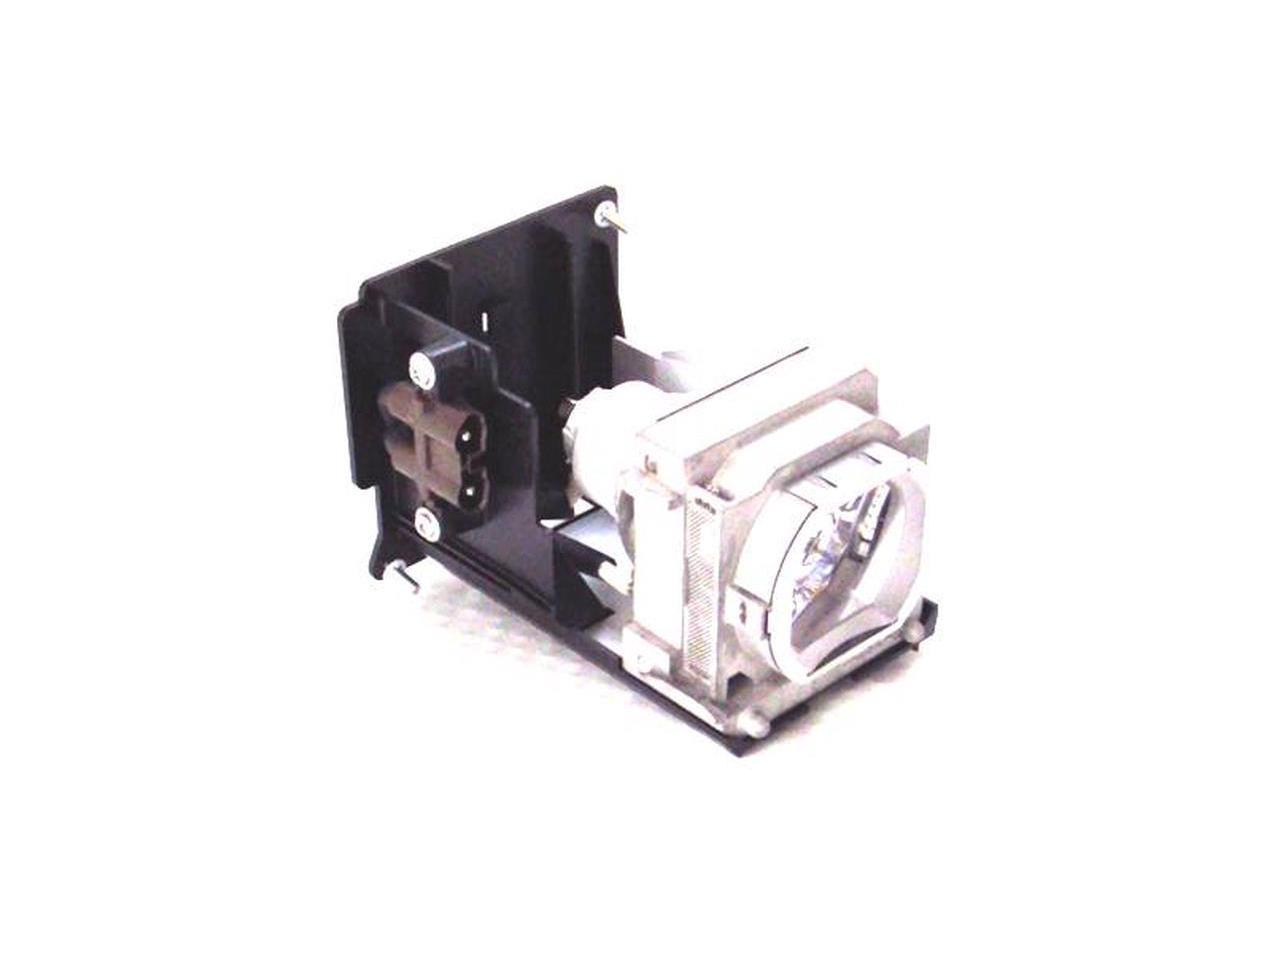 IET Lamps with 1 Year Warranty Power by Ushio Genuine OEM Replacement Lamp for Mitsubishi HC4900 Projector